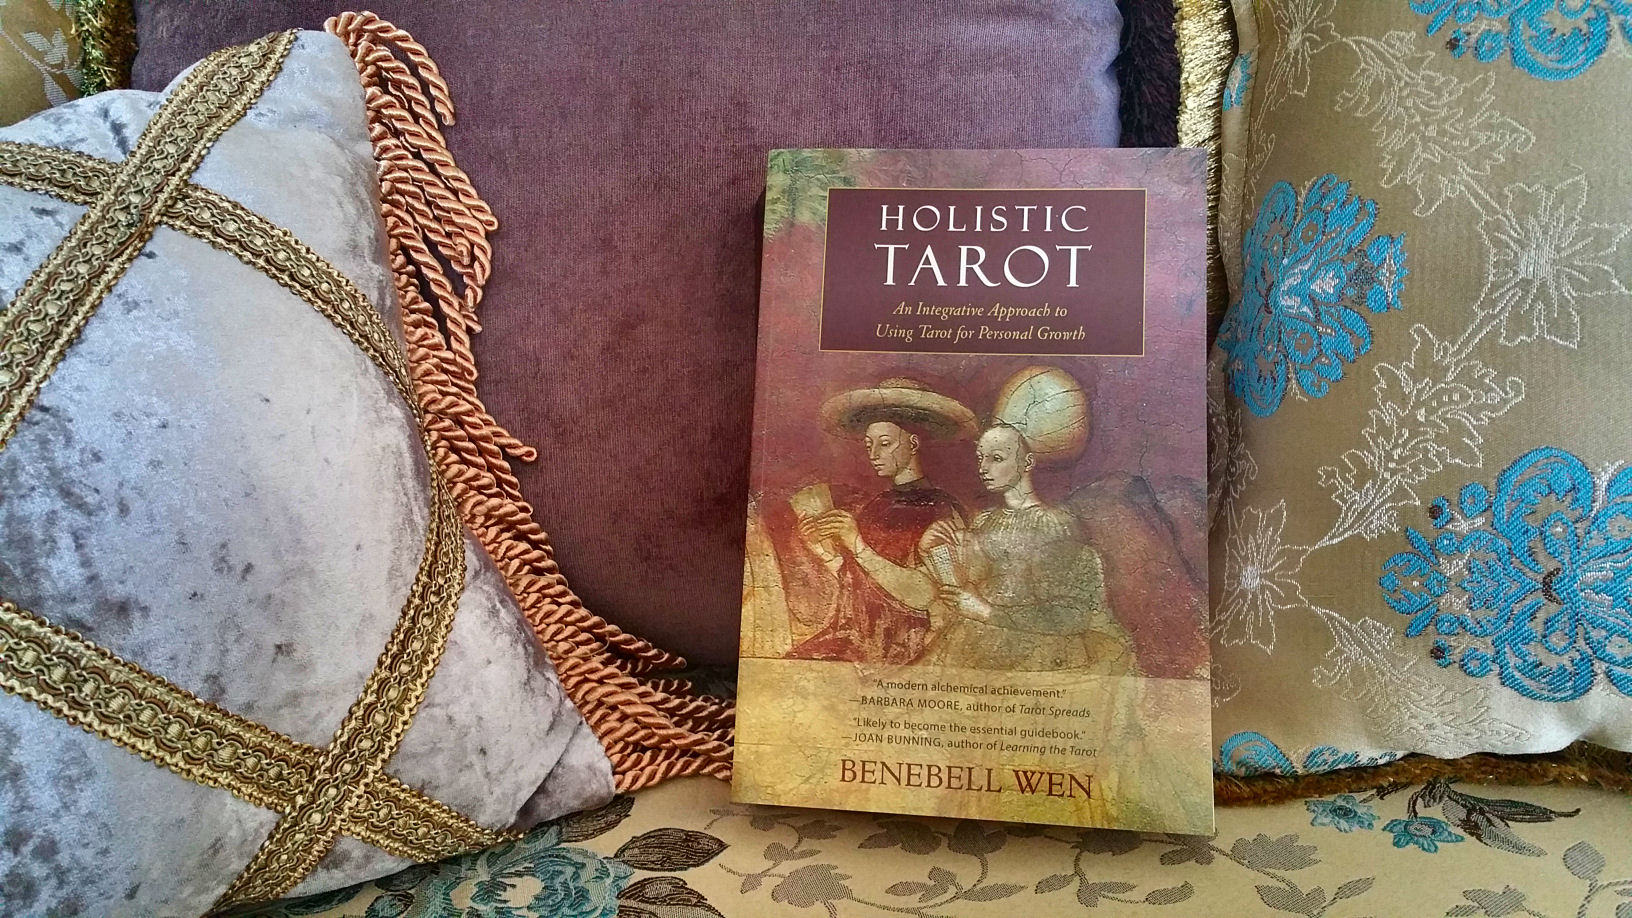 Holistic Tarot An Integrative Approach to Using Tarot for Personal Growth